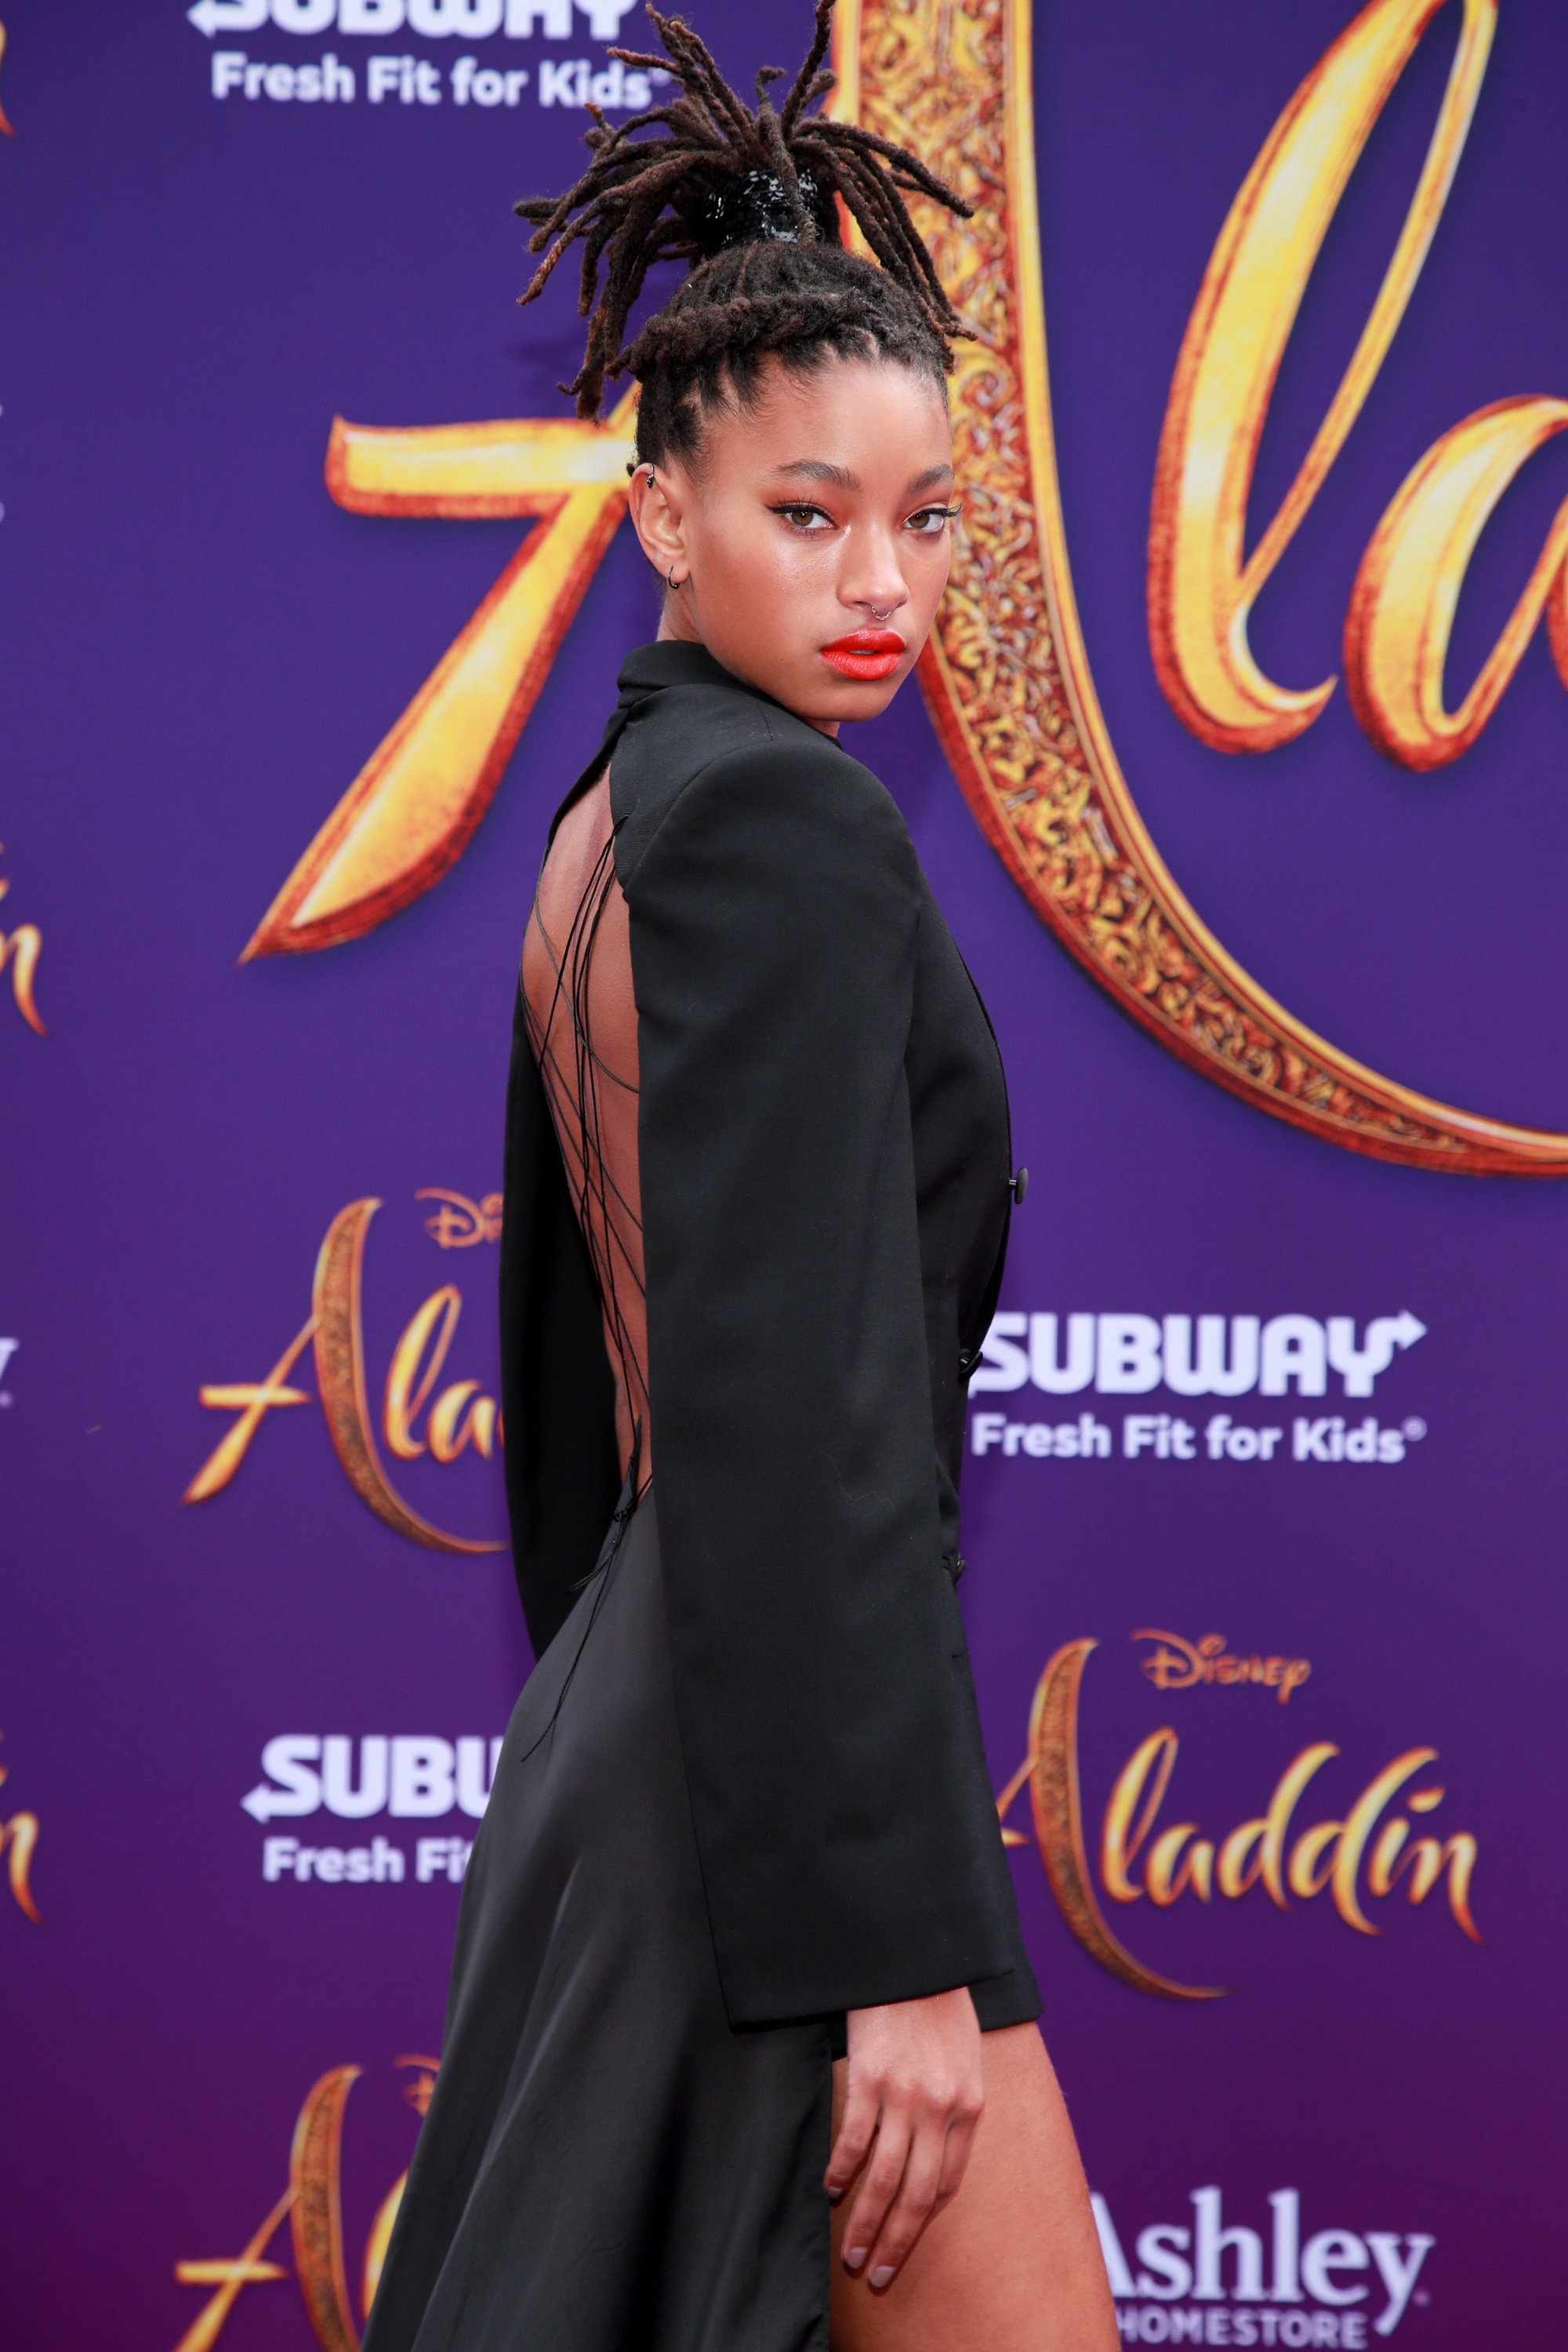 Willow Smith at the premiere of Aladdin in May 2019 | Photo: Getty Images